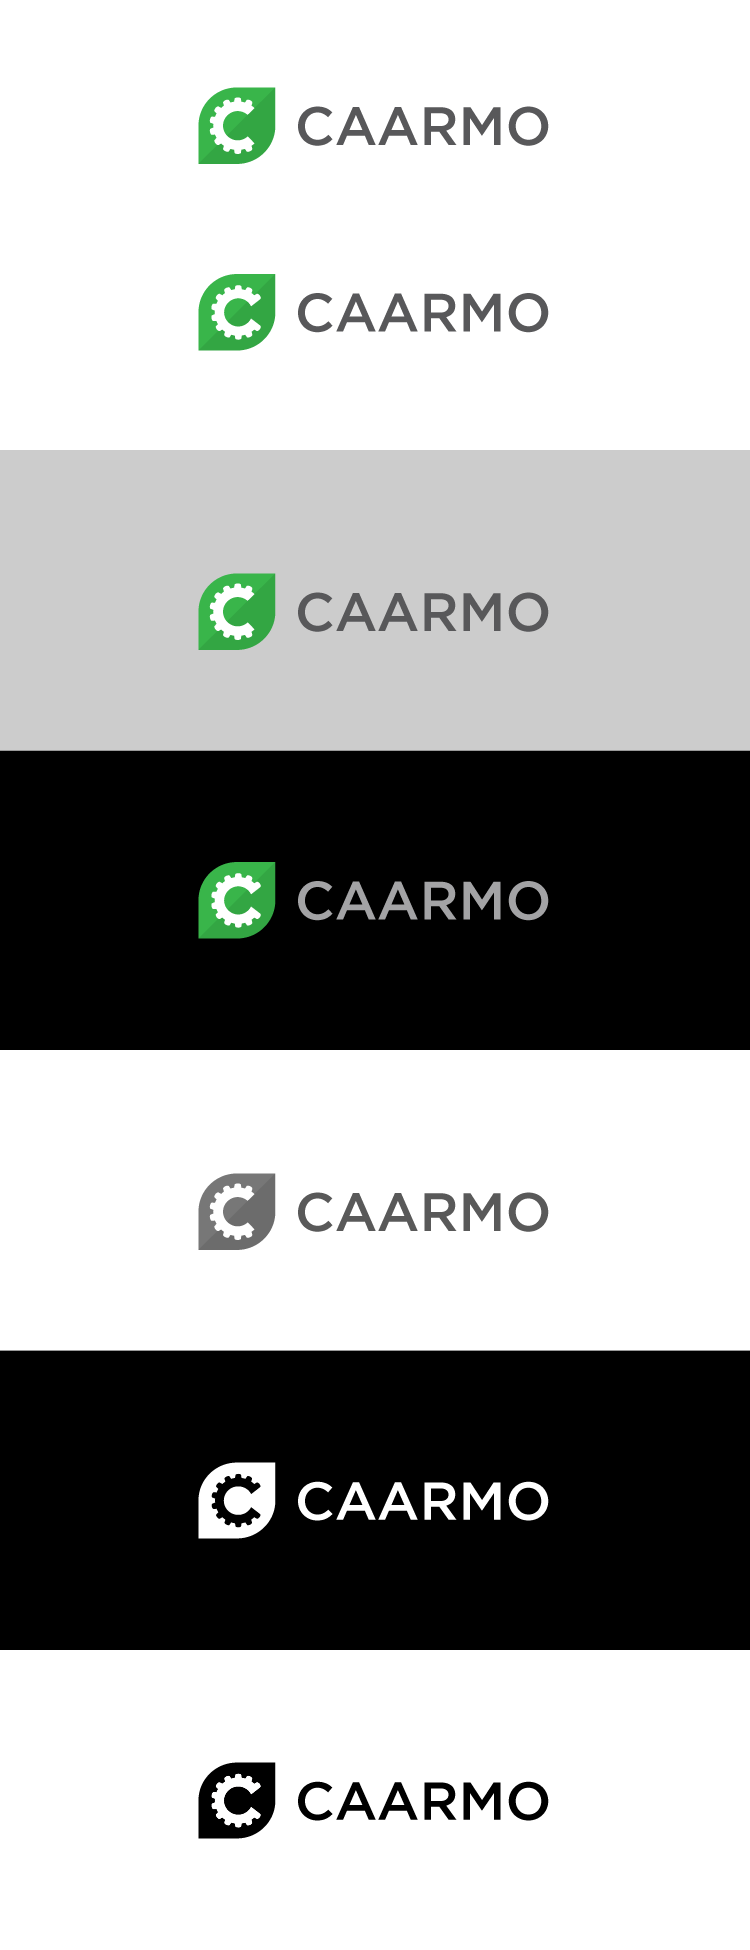 Create the next logo for Caarmo